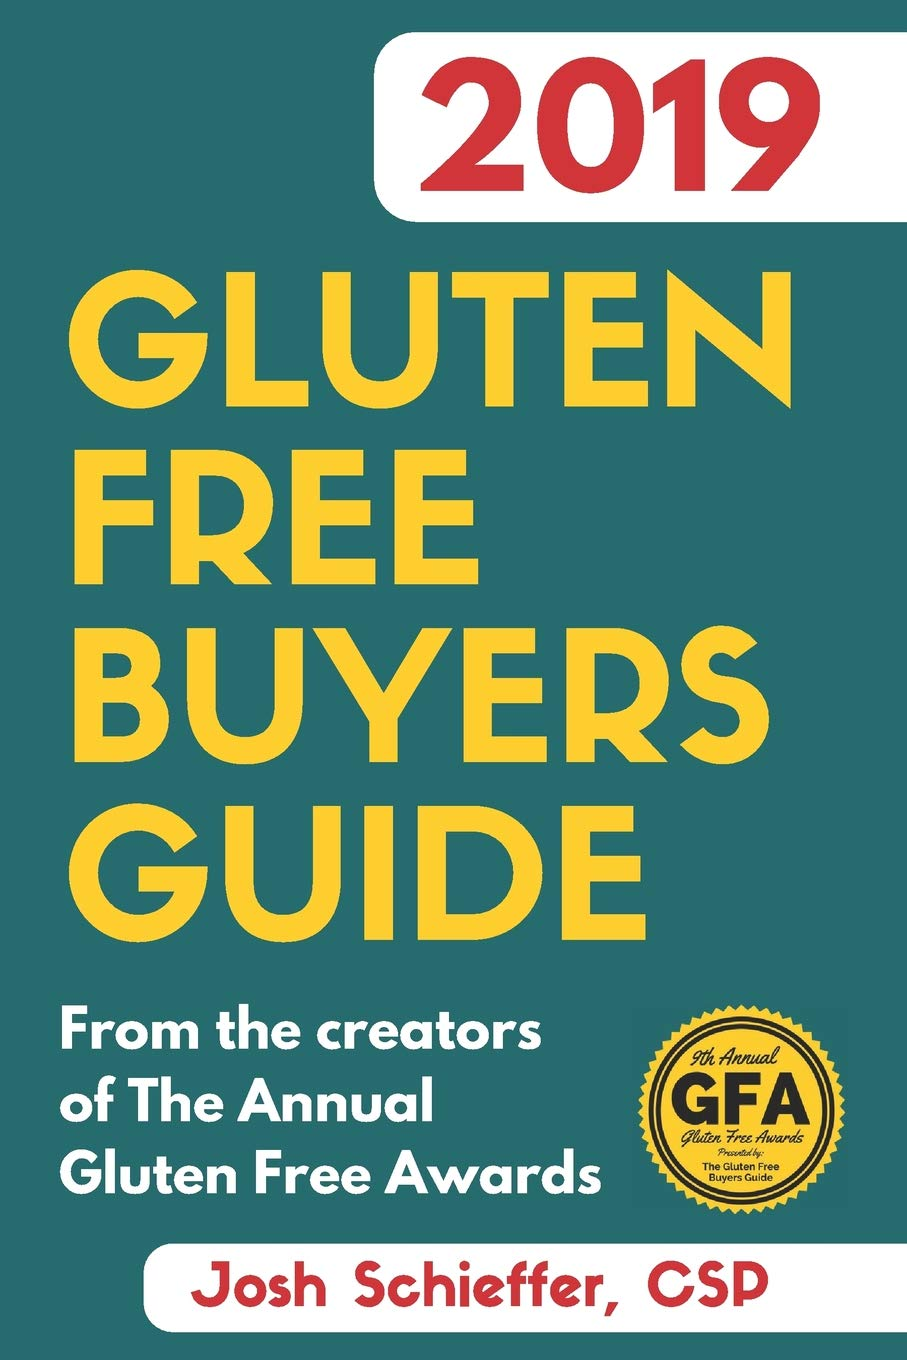 2019 Gluten Free Buyers Guide Connecting You To The Best In Gluten Free So You Can Skip To The Good Stuff Schieffer Josh 9781730859922 Amazon Com Books